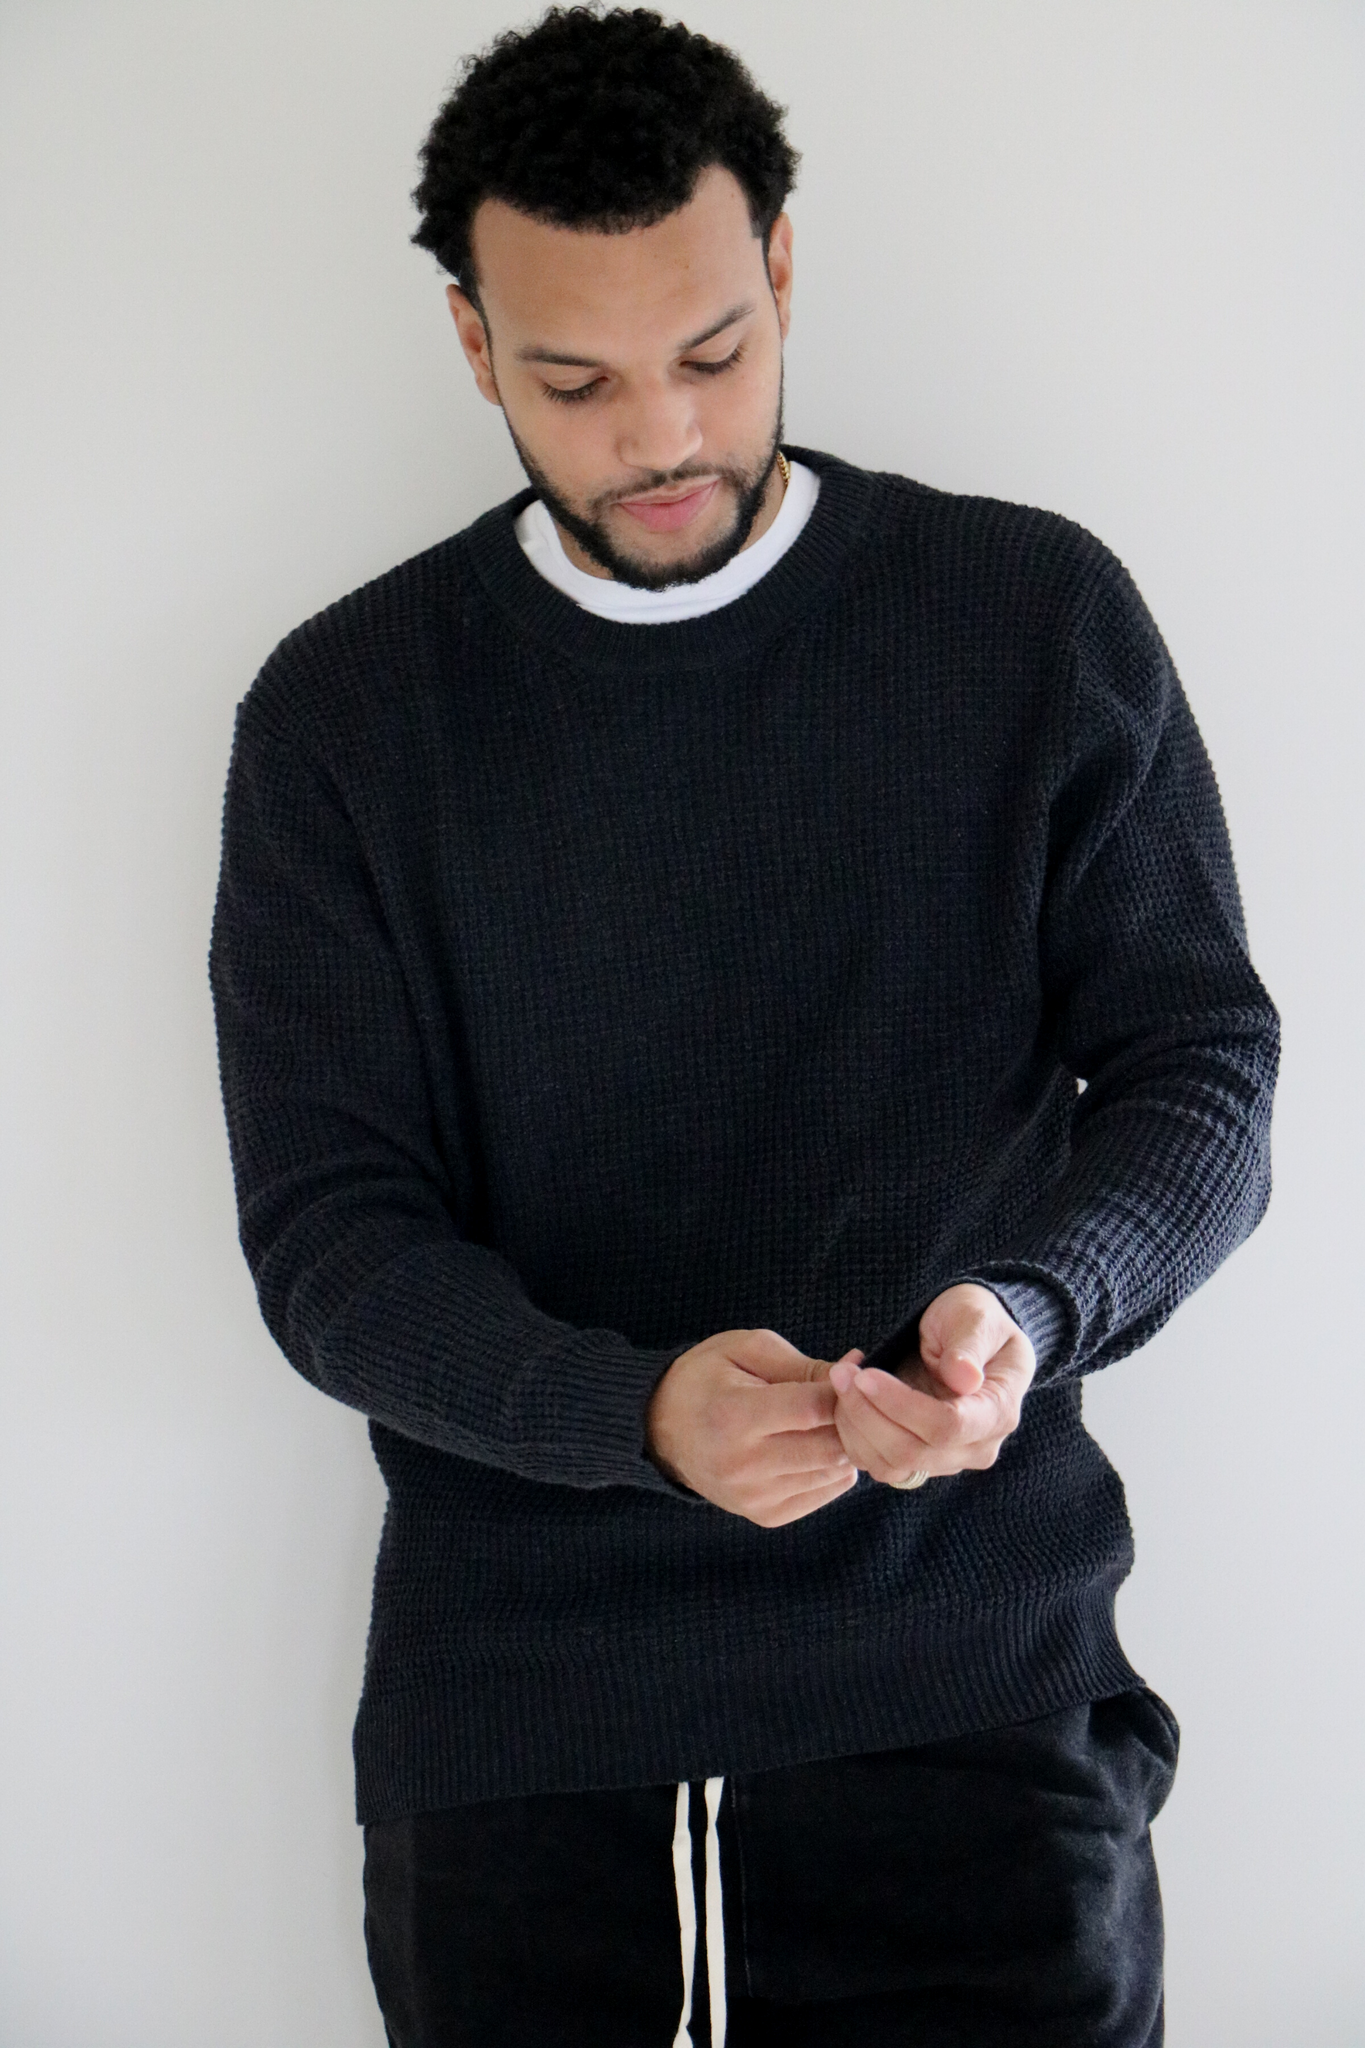 Rossland Knit Pullover Sweater in Charcoal